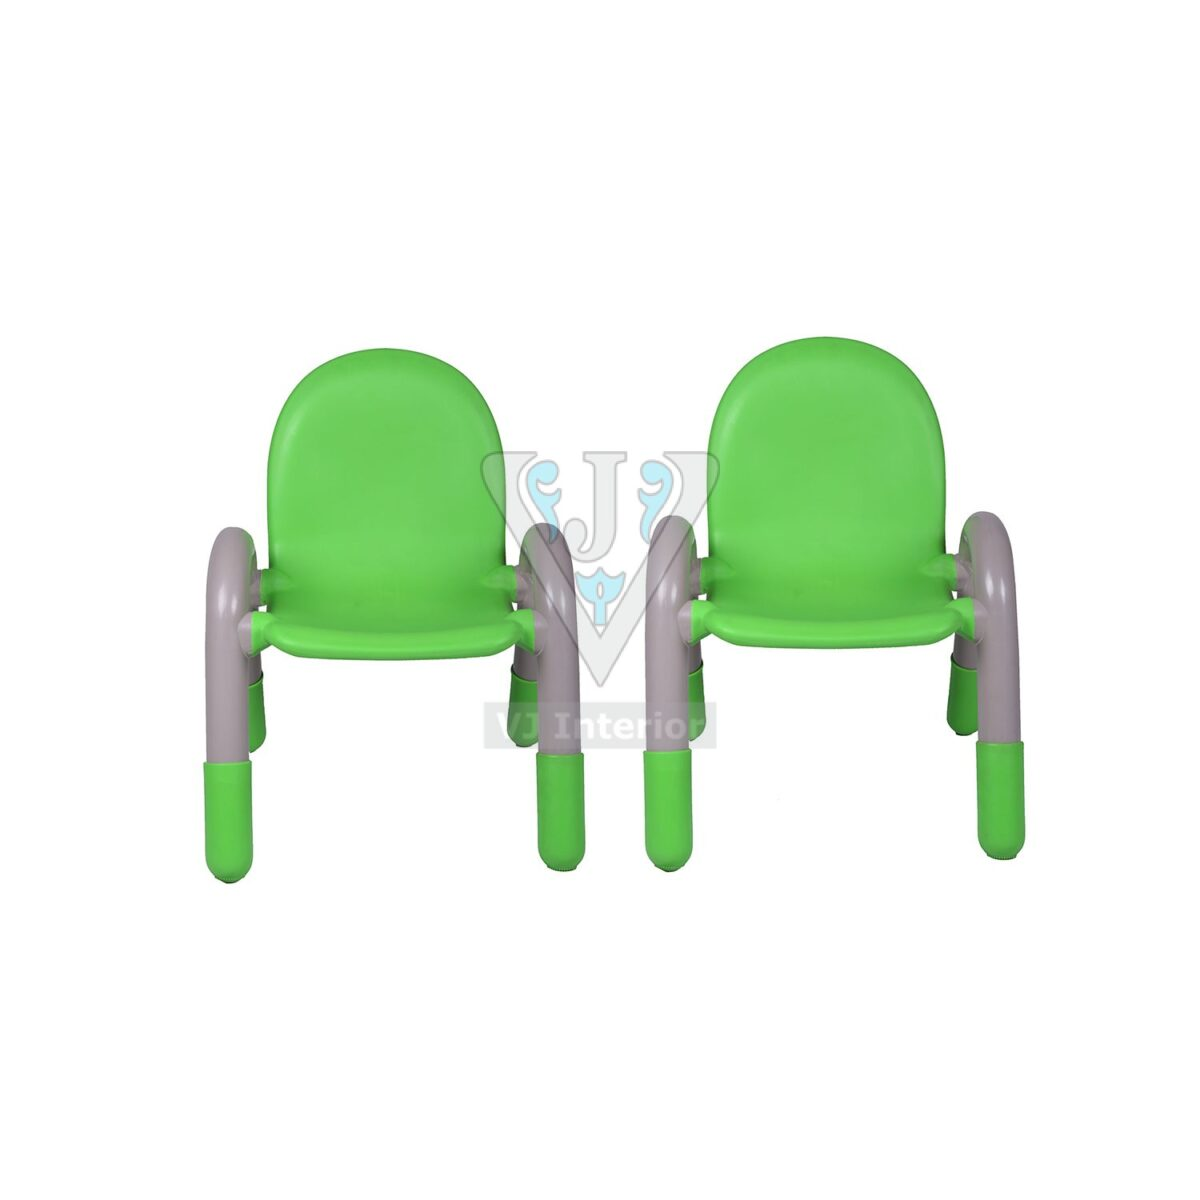 THE CHICO ENGINEERING PLASTIC KIDS CHAIR GREEN